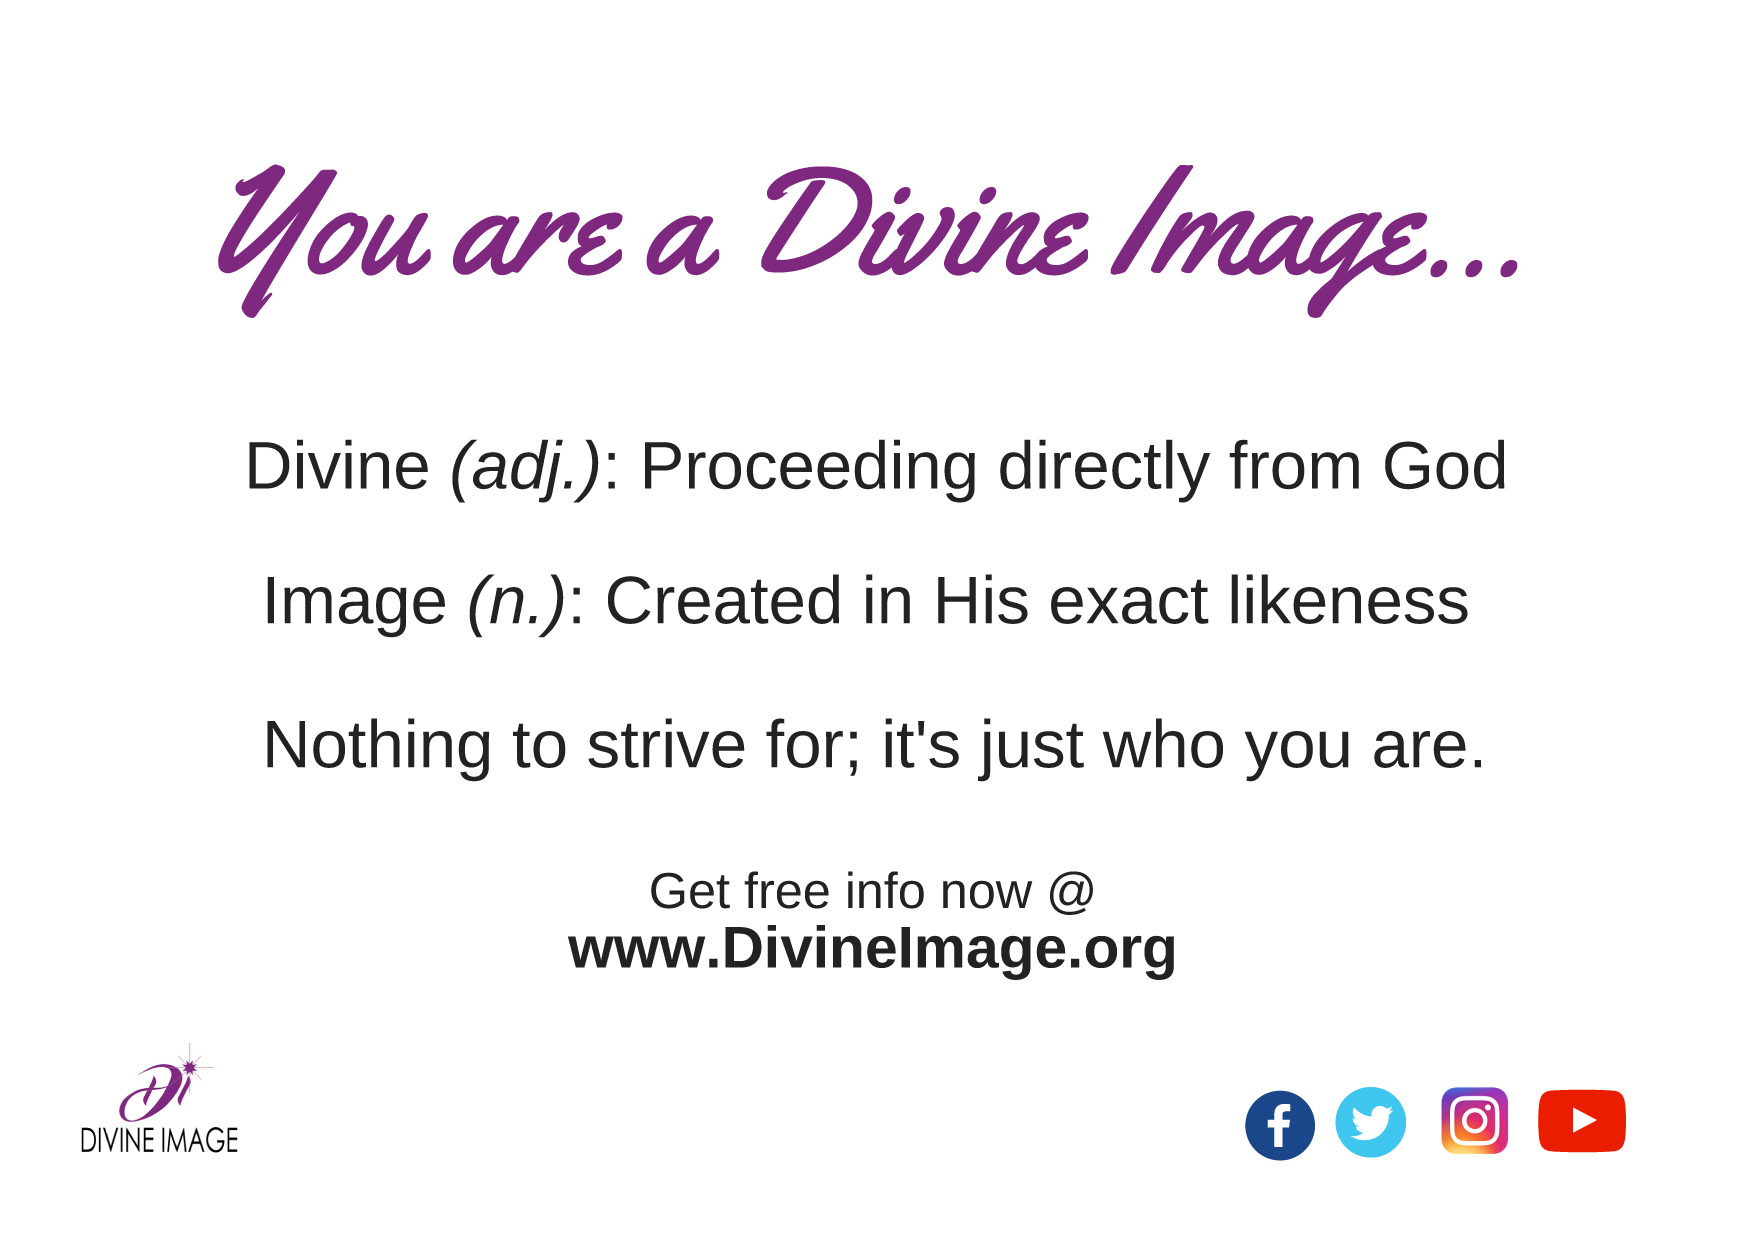 You Are a Divine Image